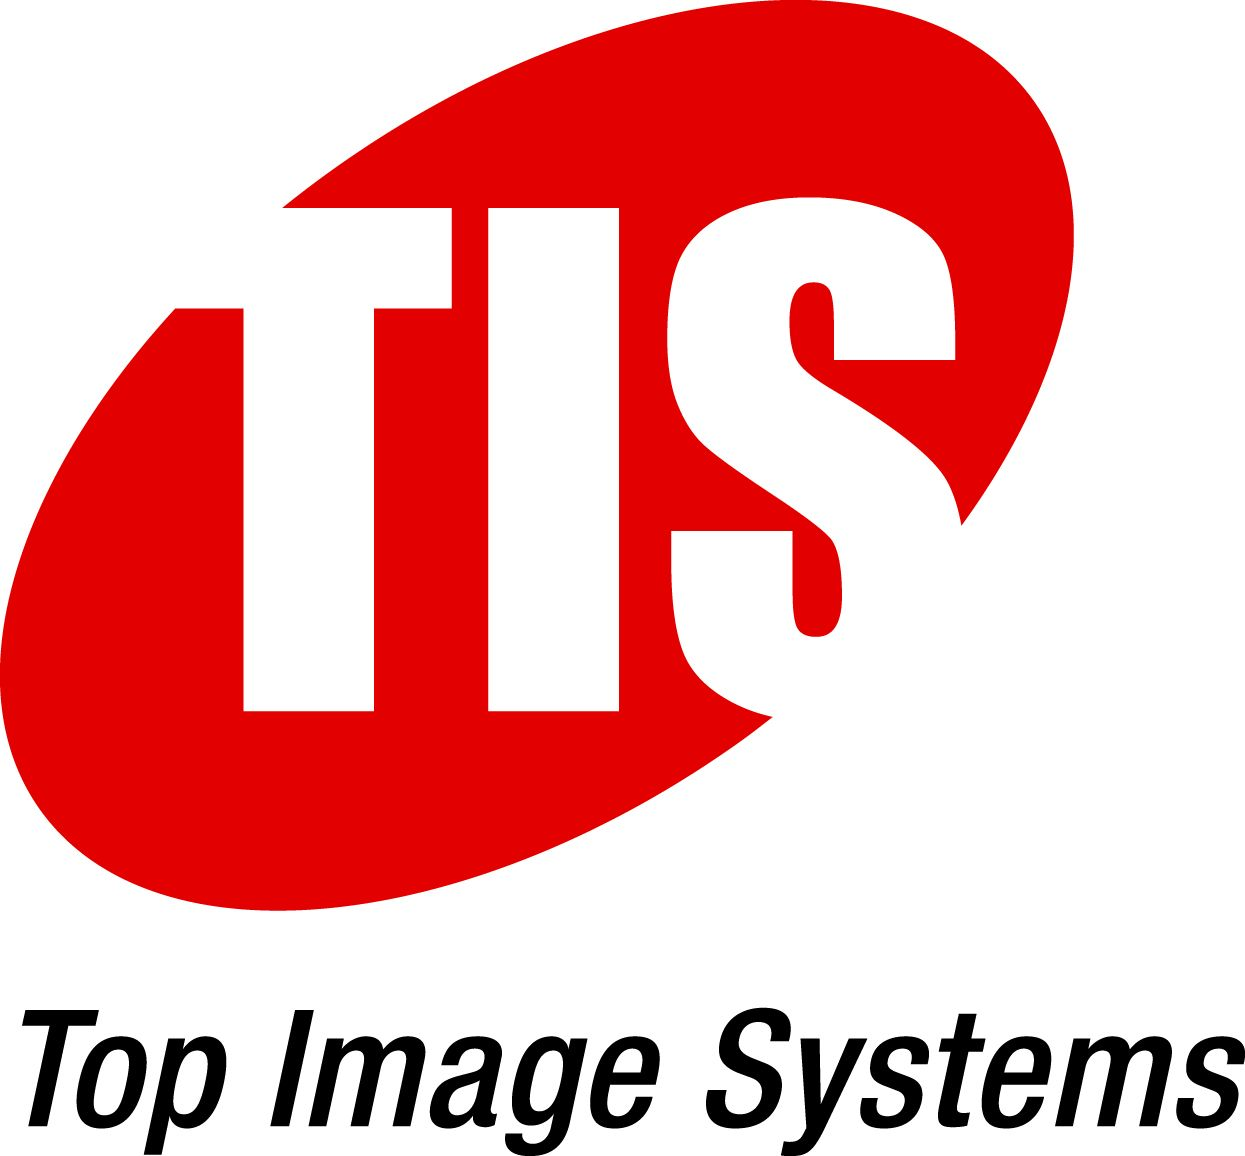 Top Image Systems Showcases Innovative Mobile & Cloud-Based Financial Process Automation Solutions at NACHA's PAYMENTS 2015